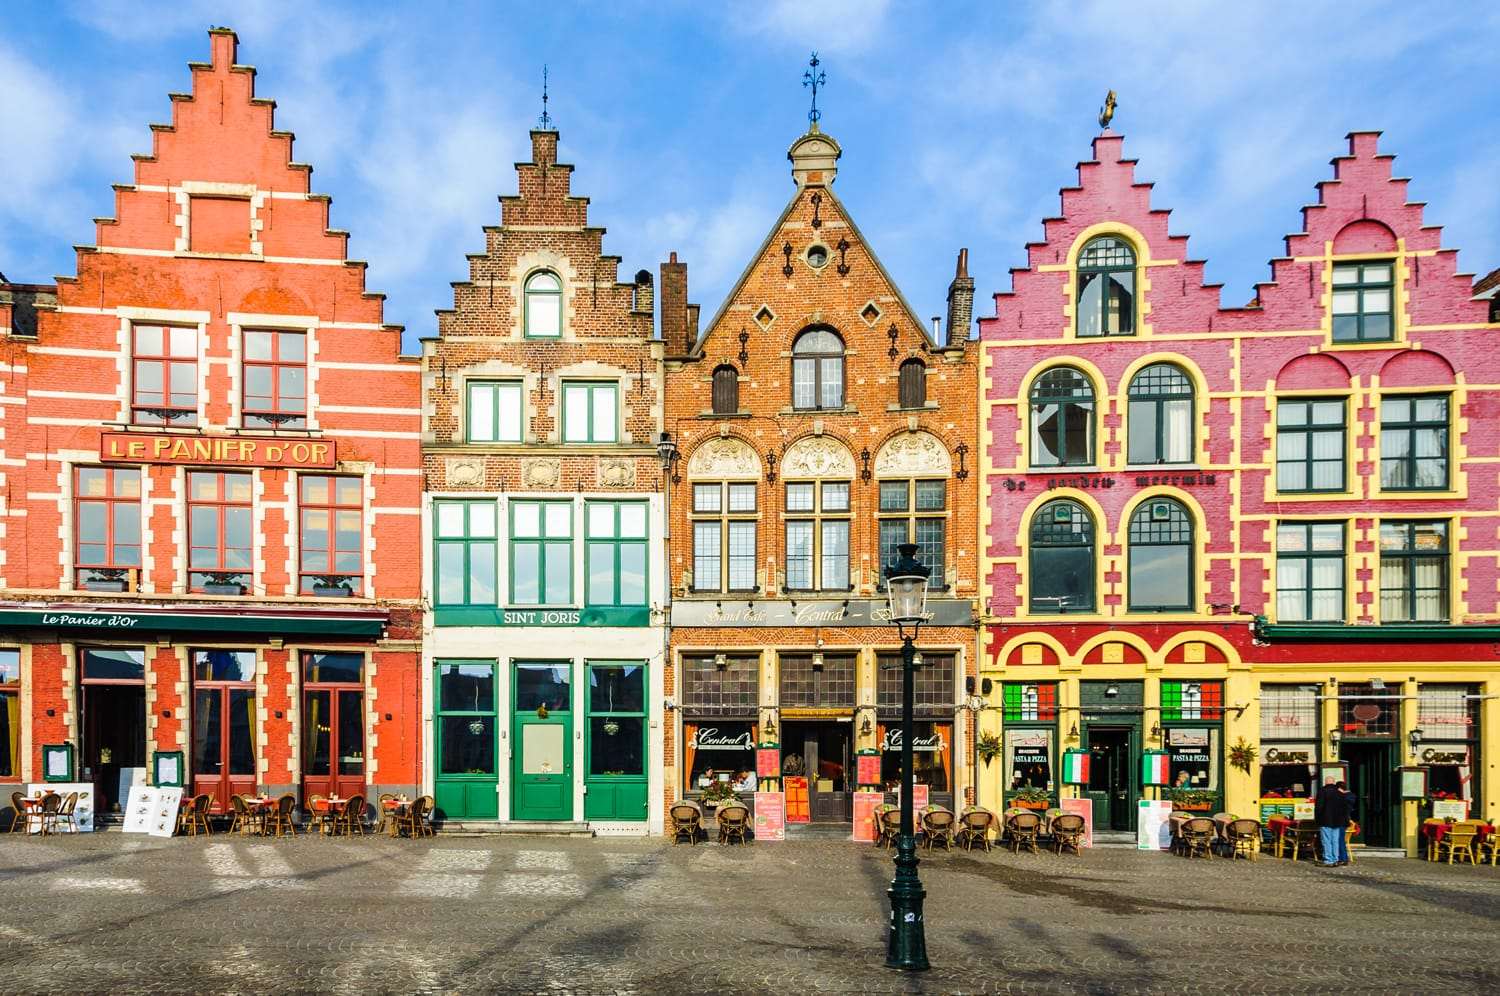 Colorful old brick houses in the Market Square in the UNESCO World Heritage Old Town of Bruges, Belgium